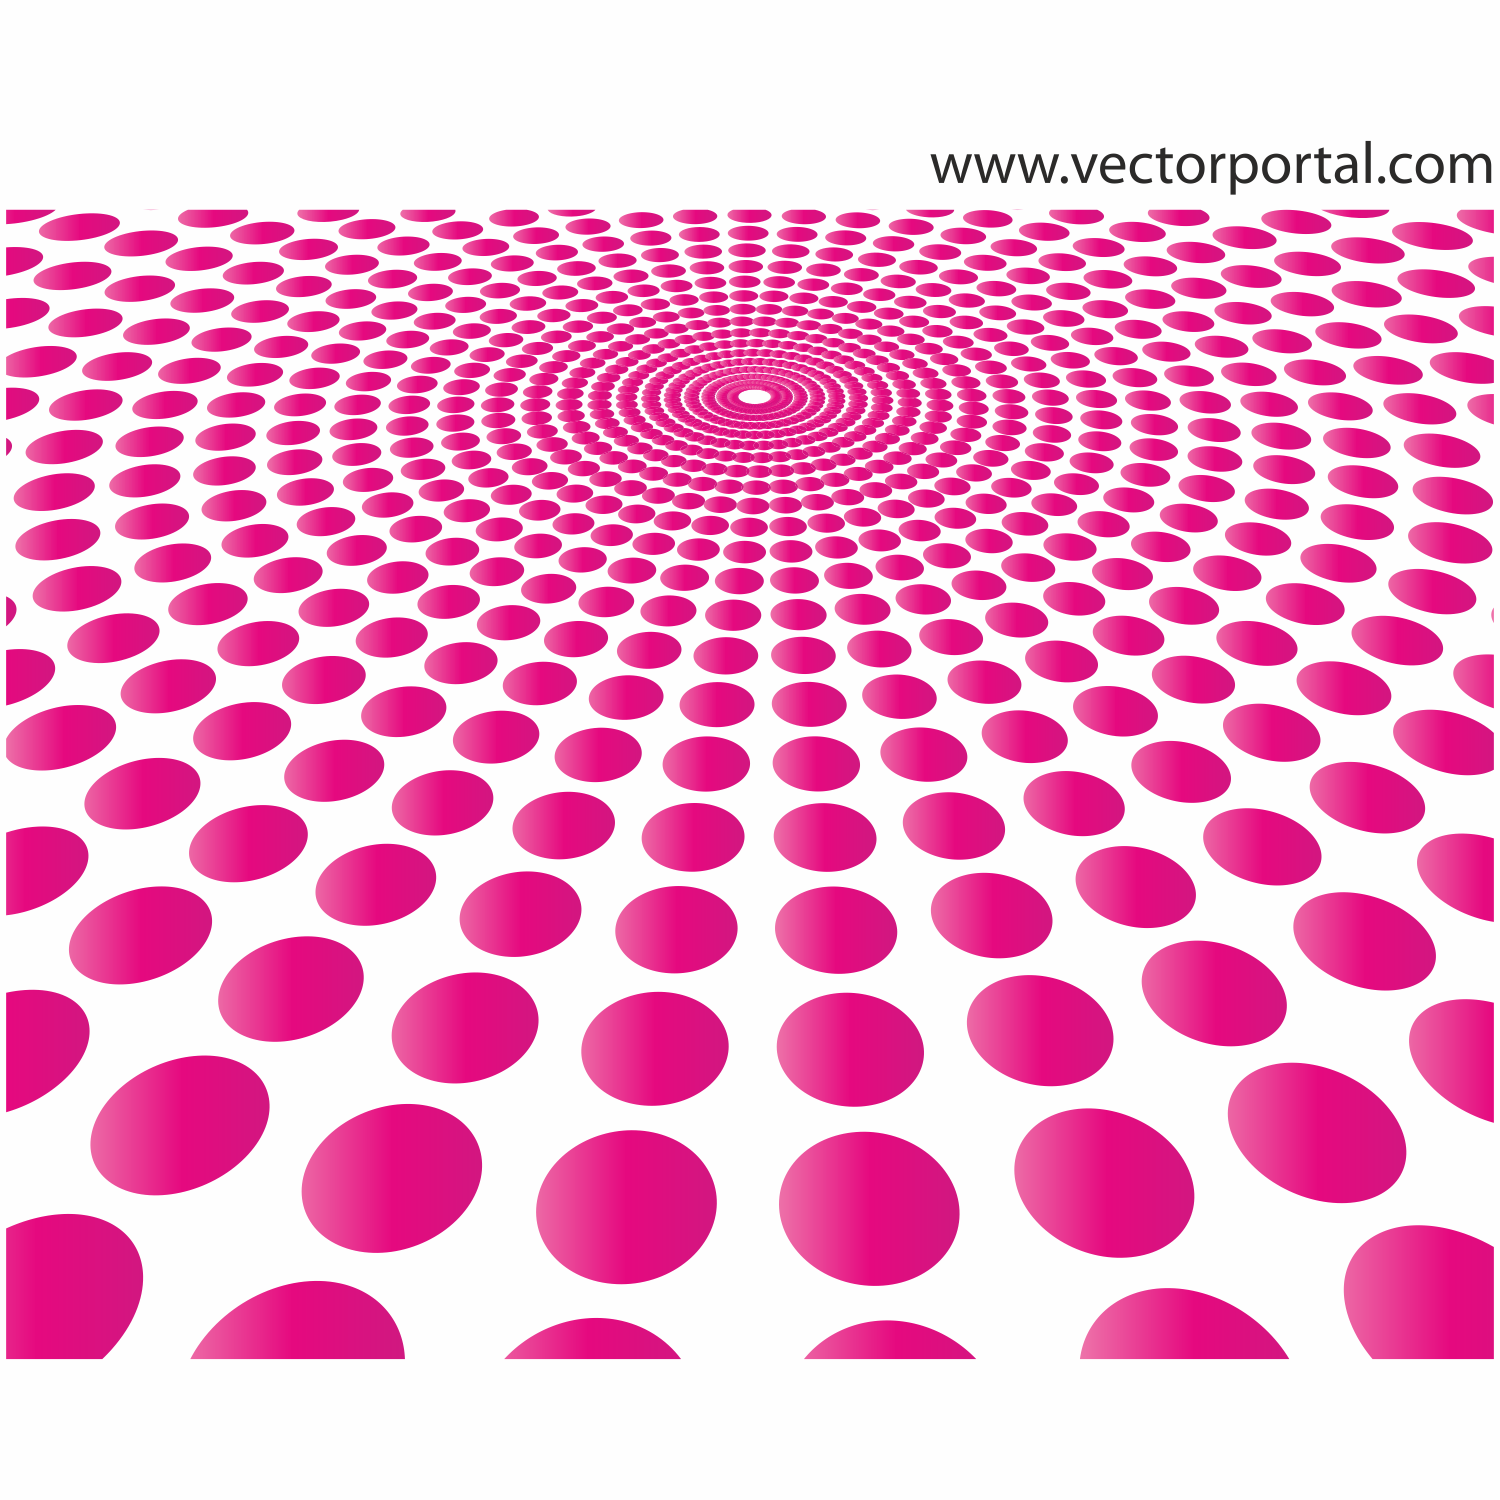 ABSTRACT PINK DOTS VECTOR DESIGN